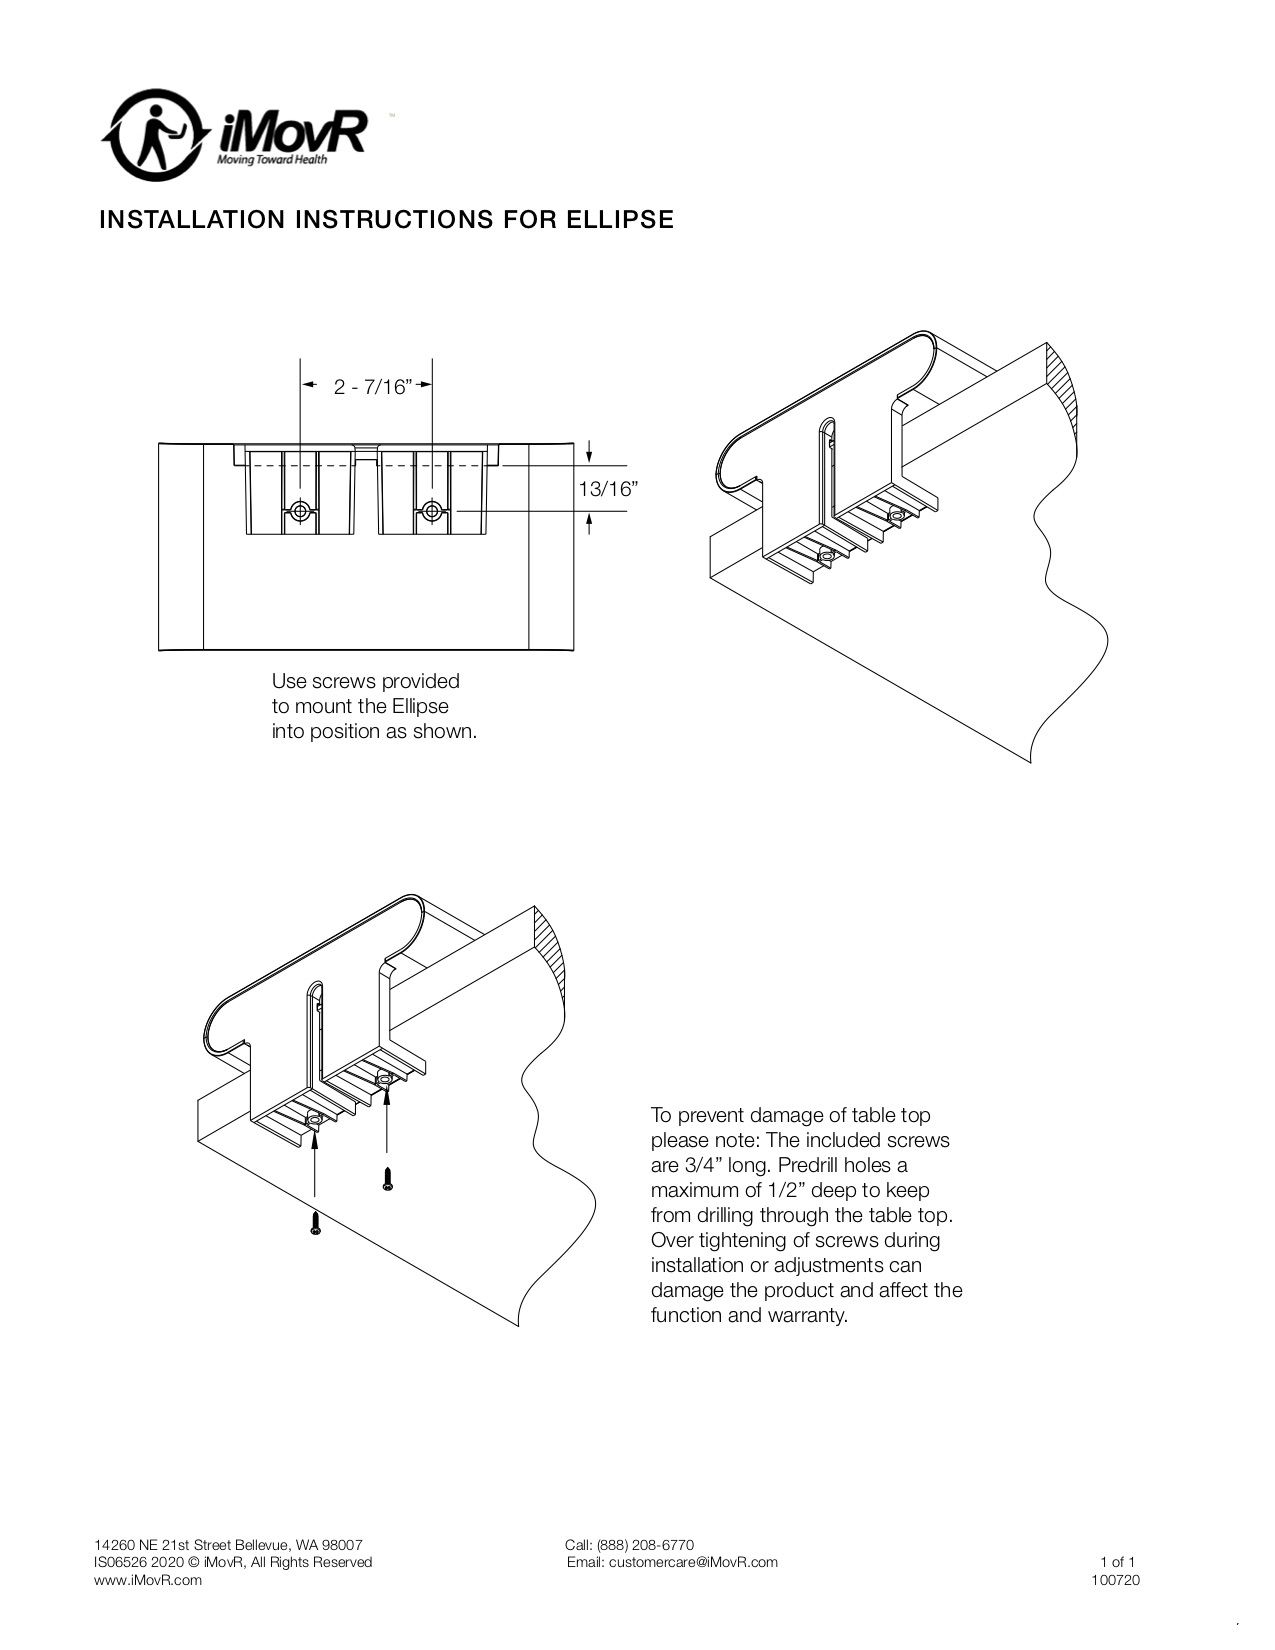 Ellipses Edge Mount Instillation Instructions